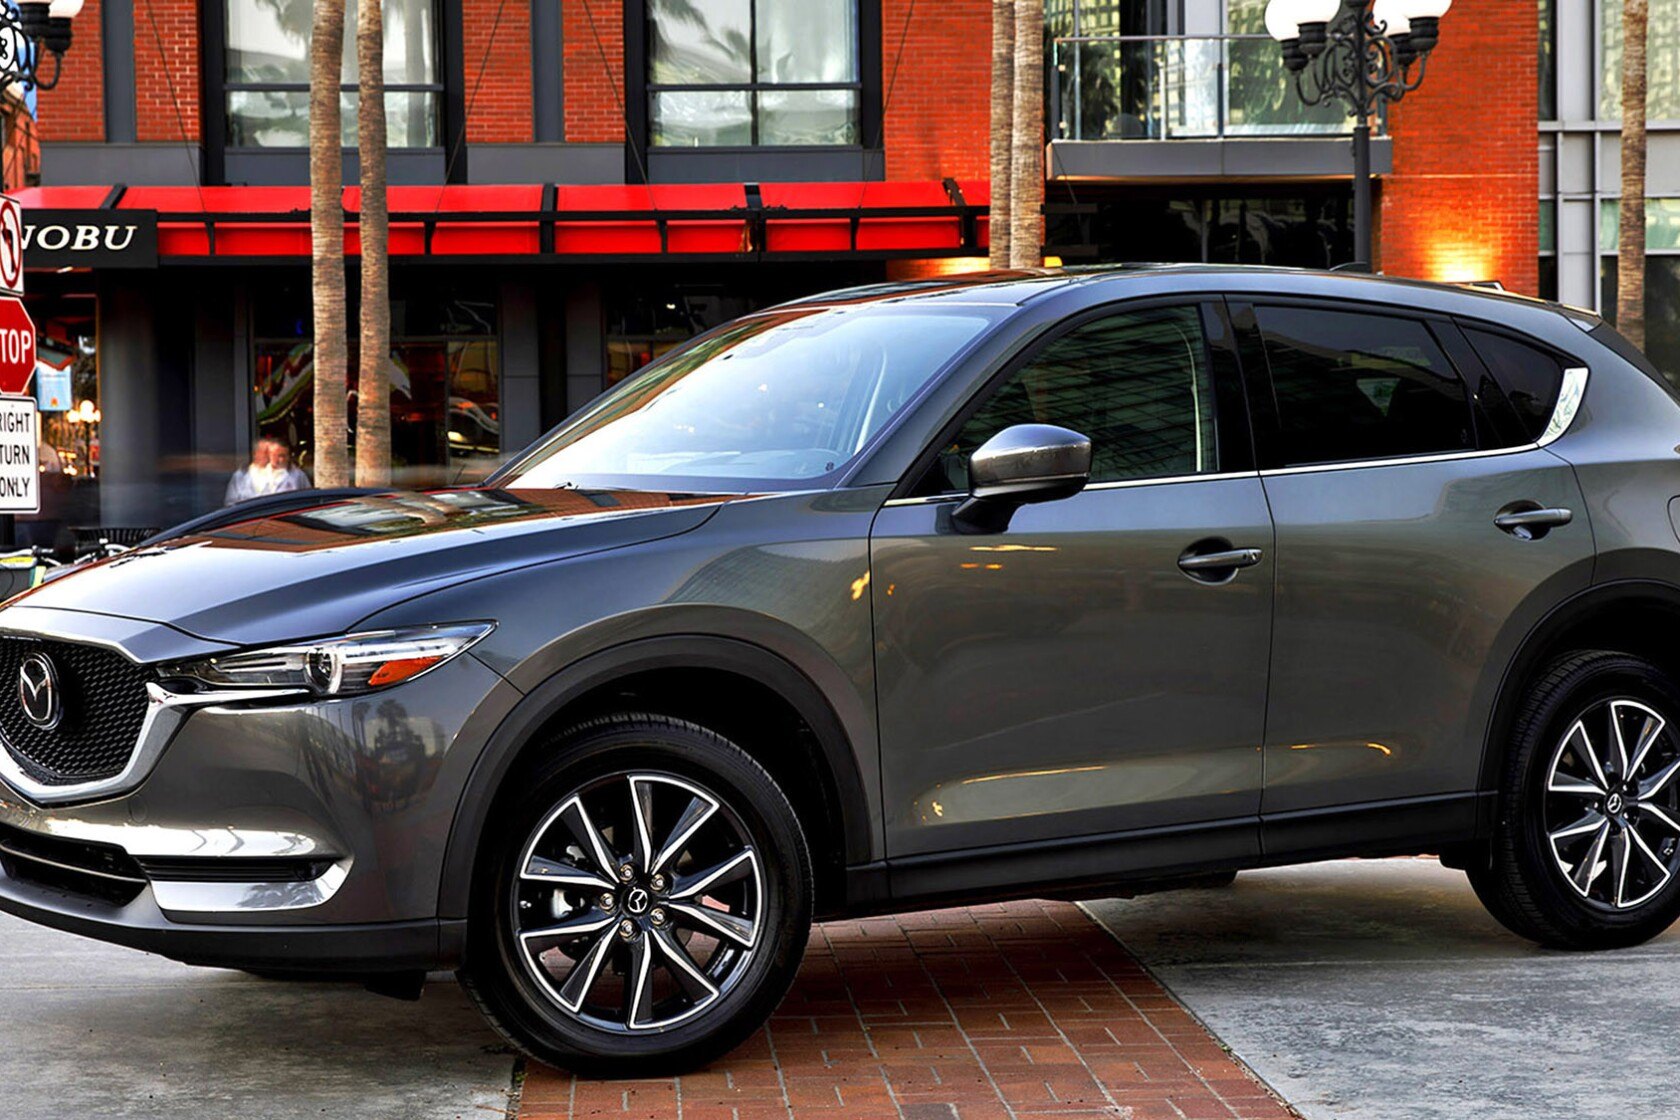 2018 Mazda CX-5: Redesign, Styling, Changes, Price >> 2017 Mazda Cx 5 Boring Is Beautiful Los Angeles Times